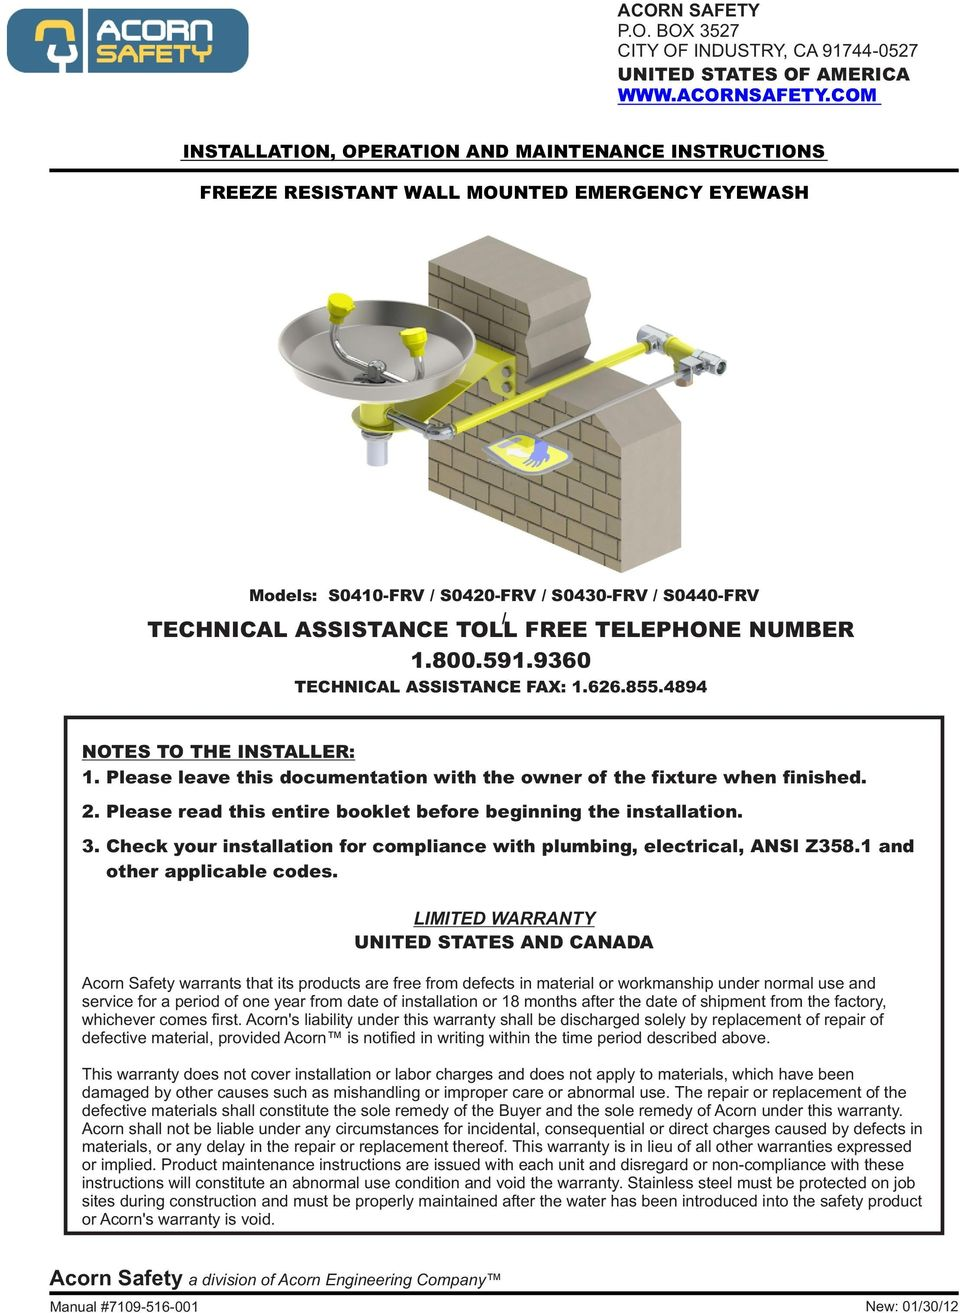 TECHNICAL ASSISTANCE TOLL FREE TELEPHONE NUMBER TECHNICAL